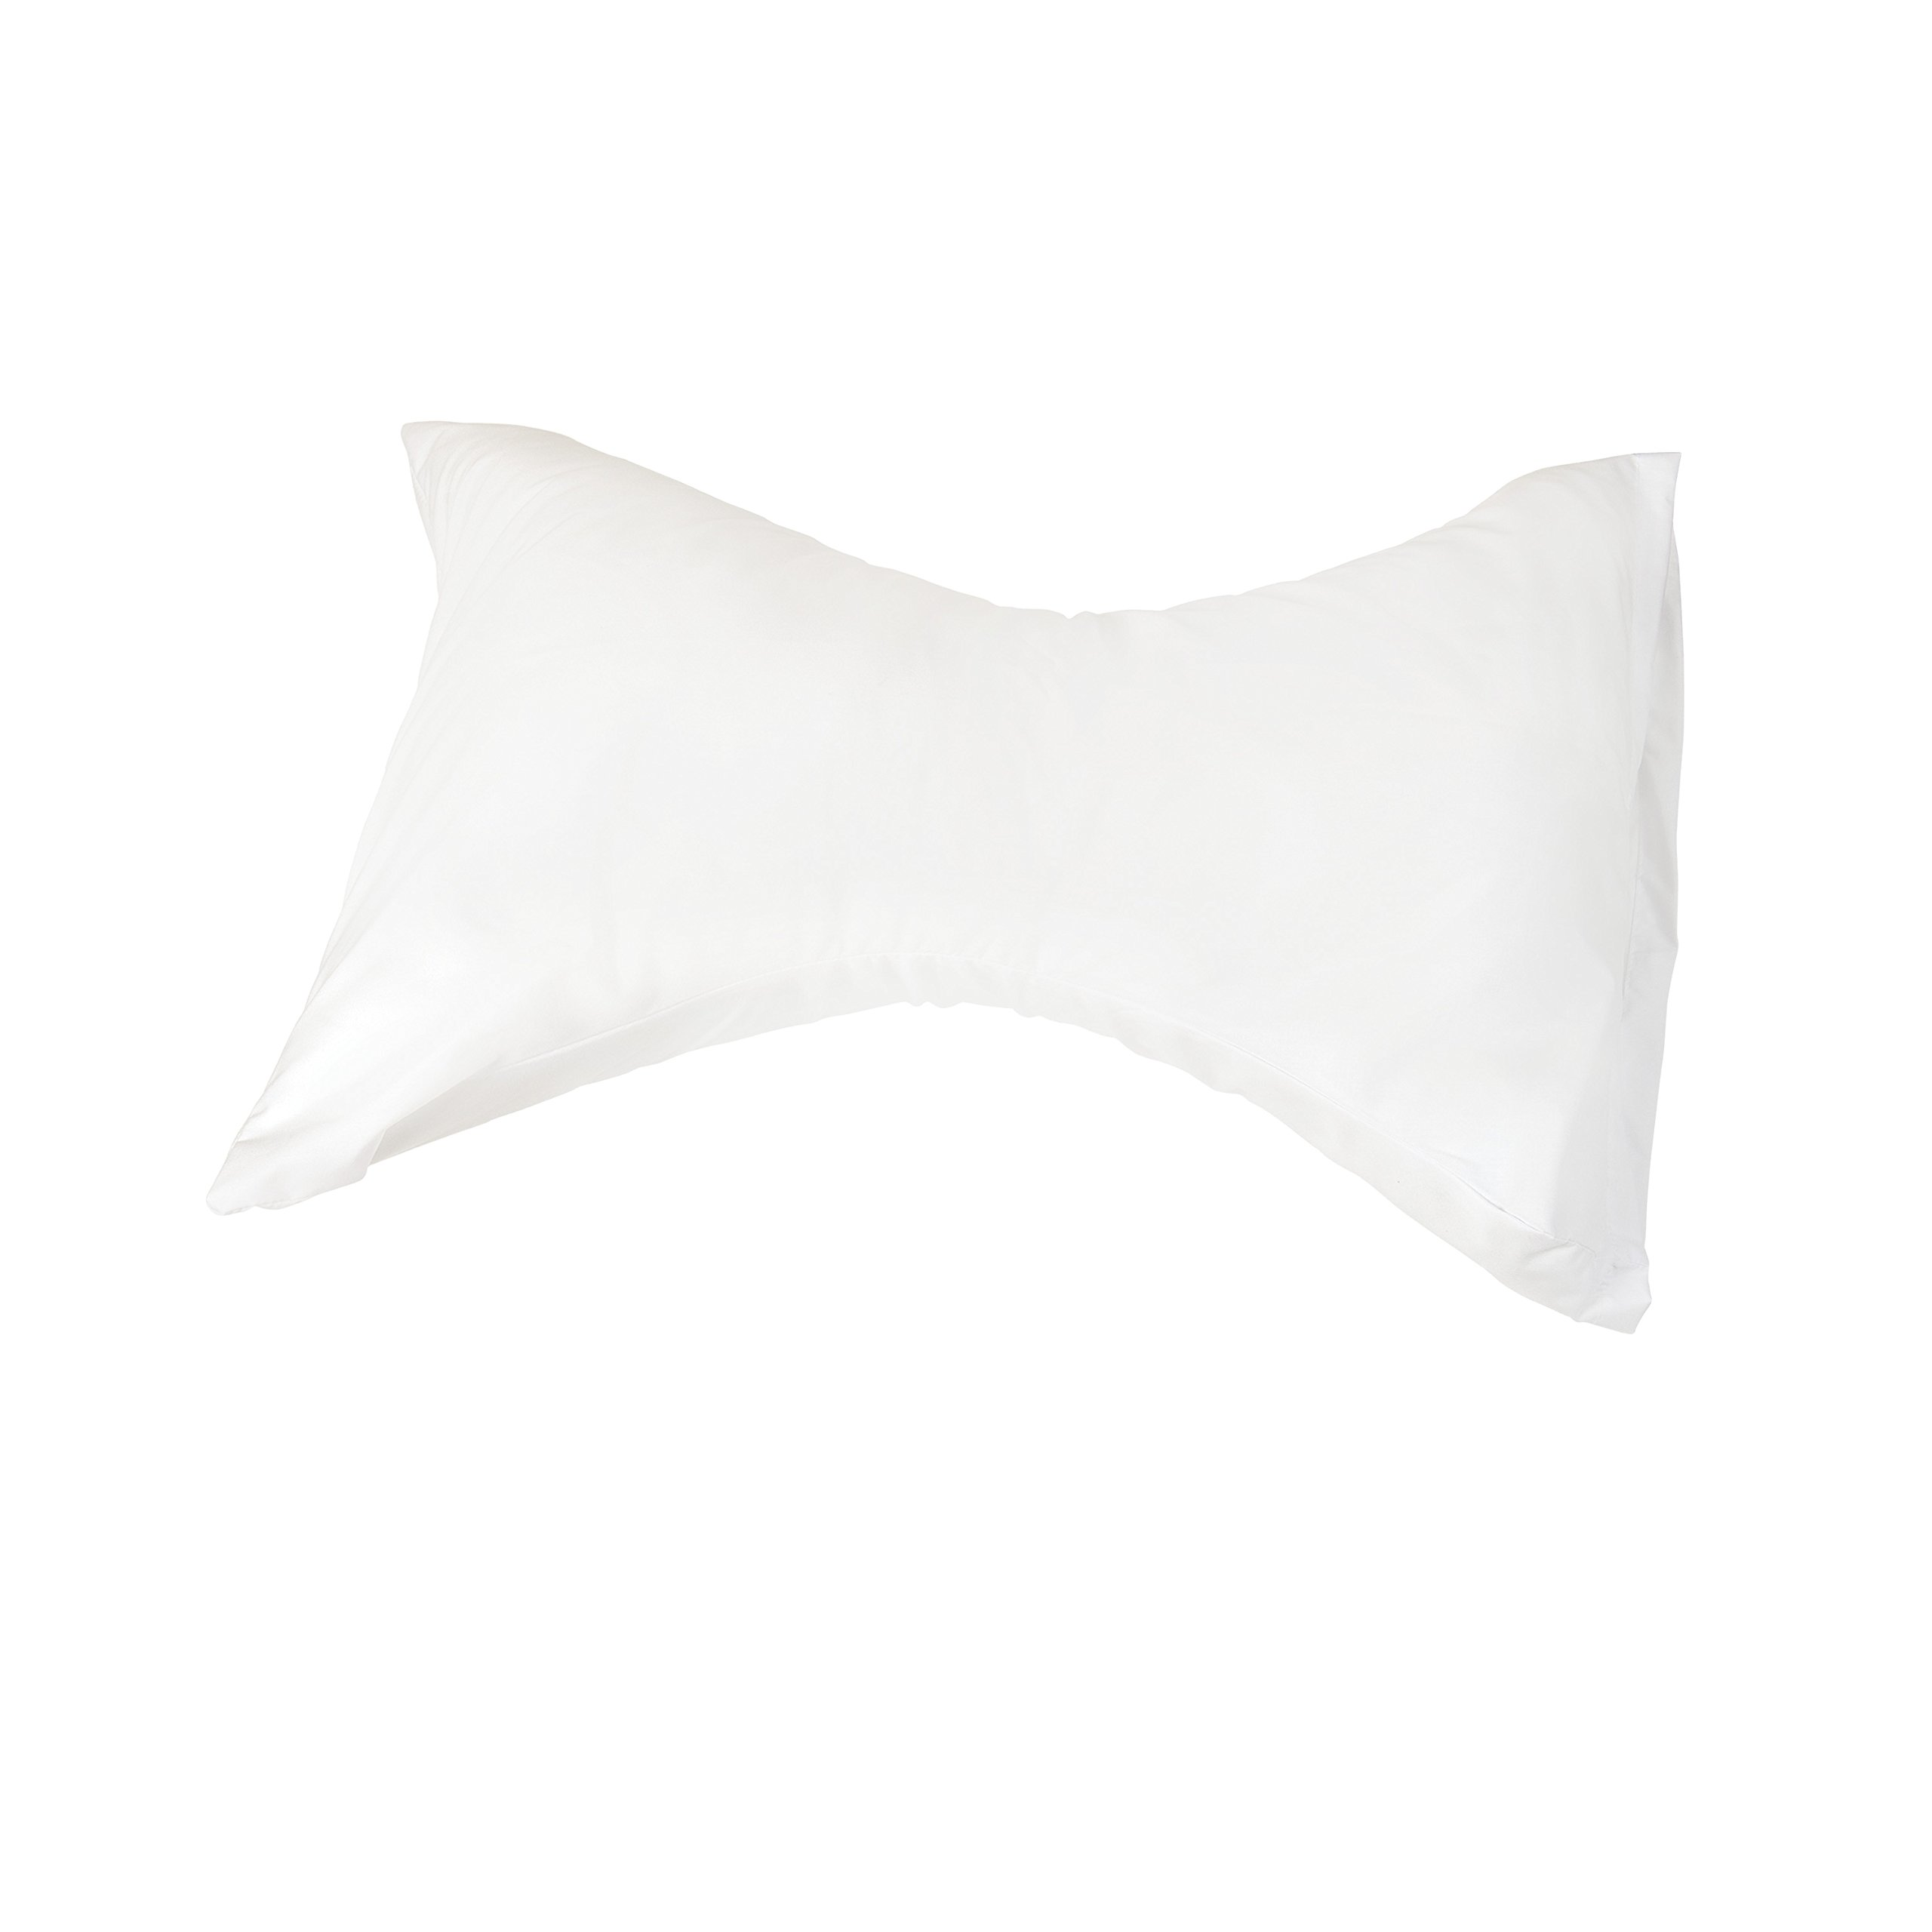 Pillow for Neck Support - Hypoallergenic Neck Pillow for King and Queen Beds - Orthopedic Neck Pillow - Neck Support Pillow, White Cover, Made in USA